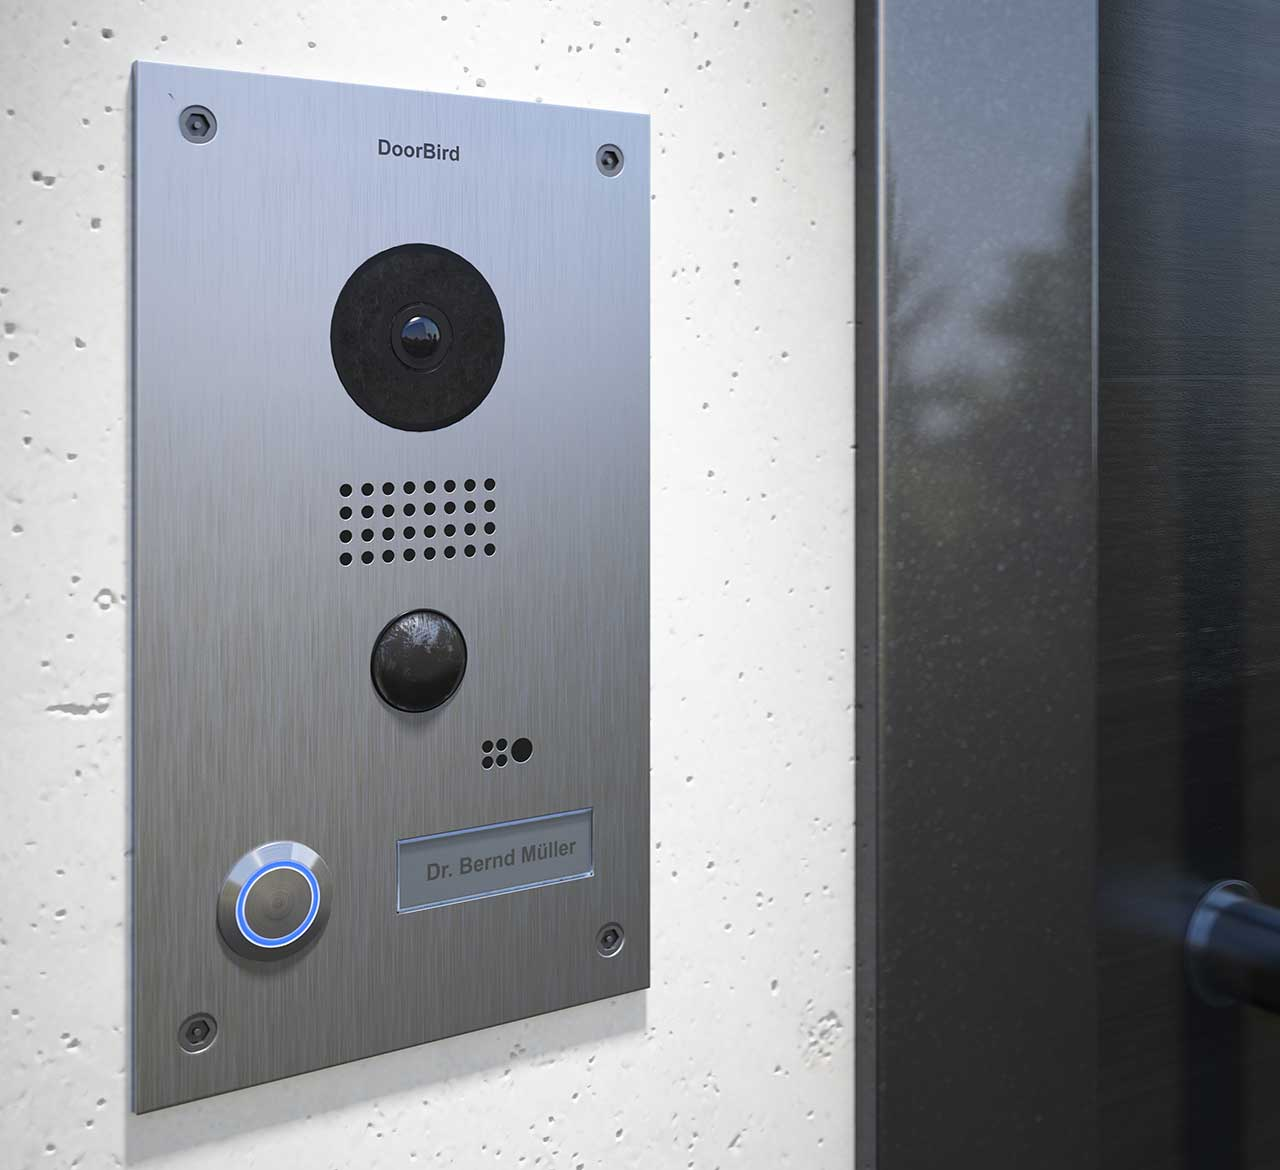 Quality for a safer home - DoorBird is manufactured in Germany. A guarantee for the highest levels of quality and production standards. Temperature-resistant from -20° to +40° C, rain water protection in accordance with IP65 industry standard, a stylish product design with high quality stainless steel models.